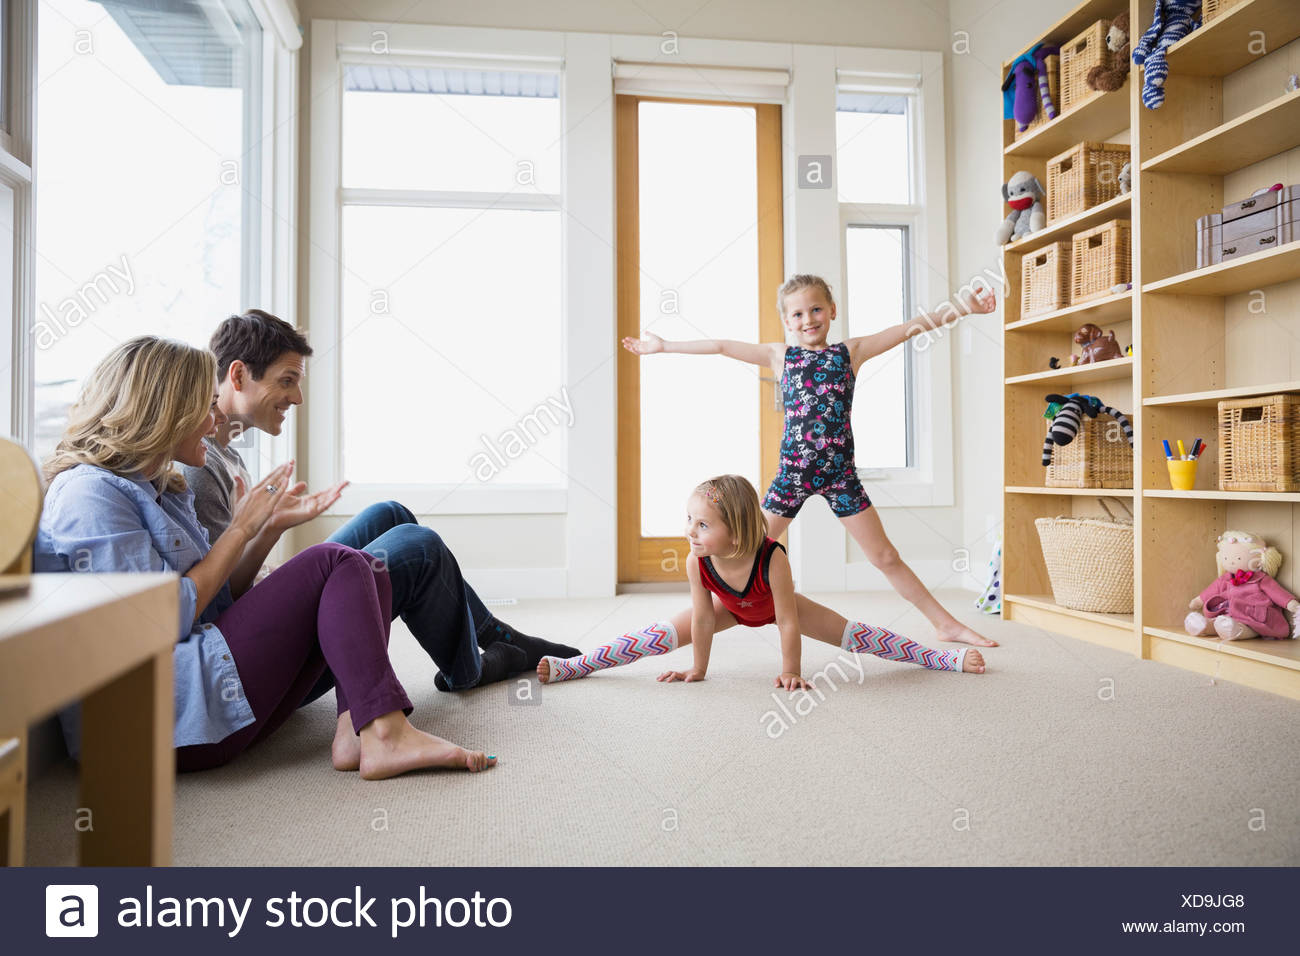 Parents watching daughters dance in living room - Stock Image